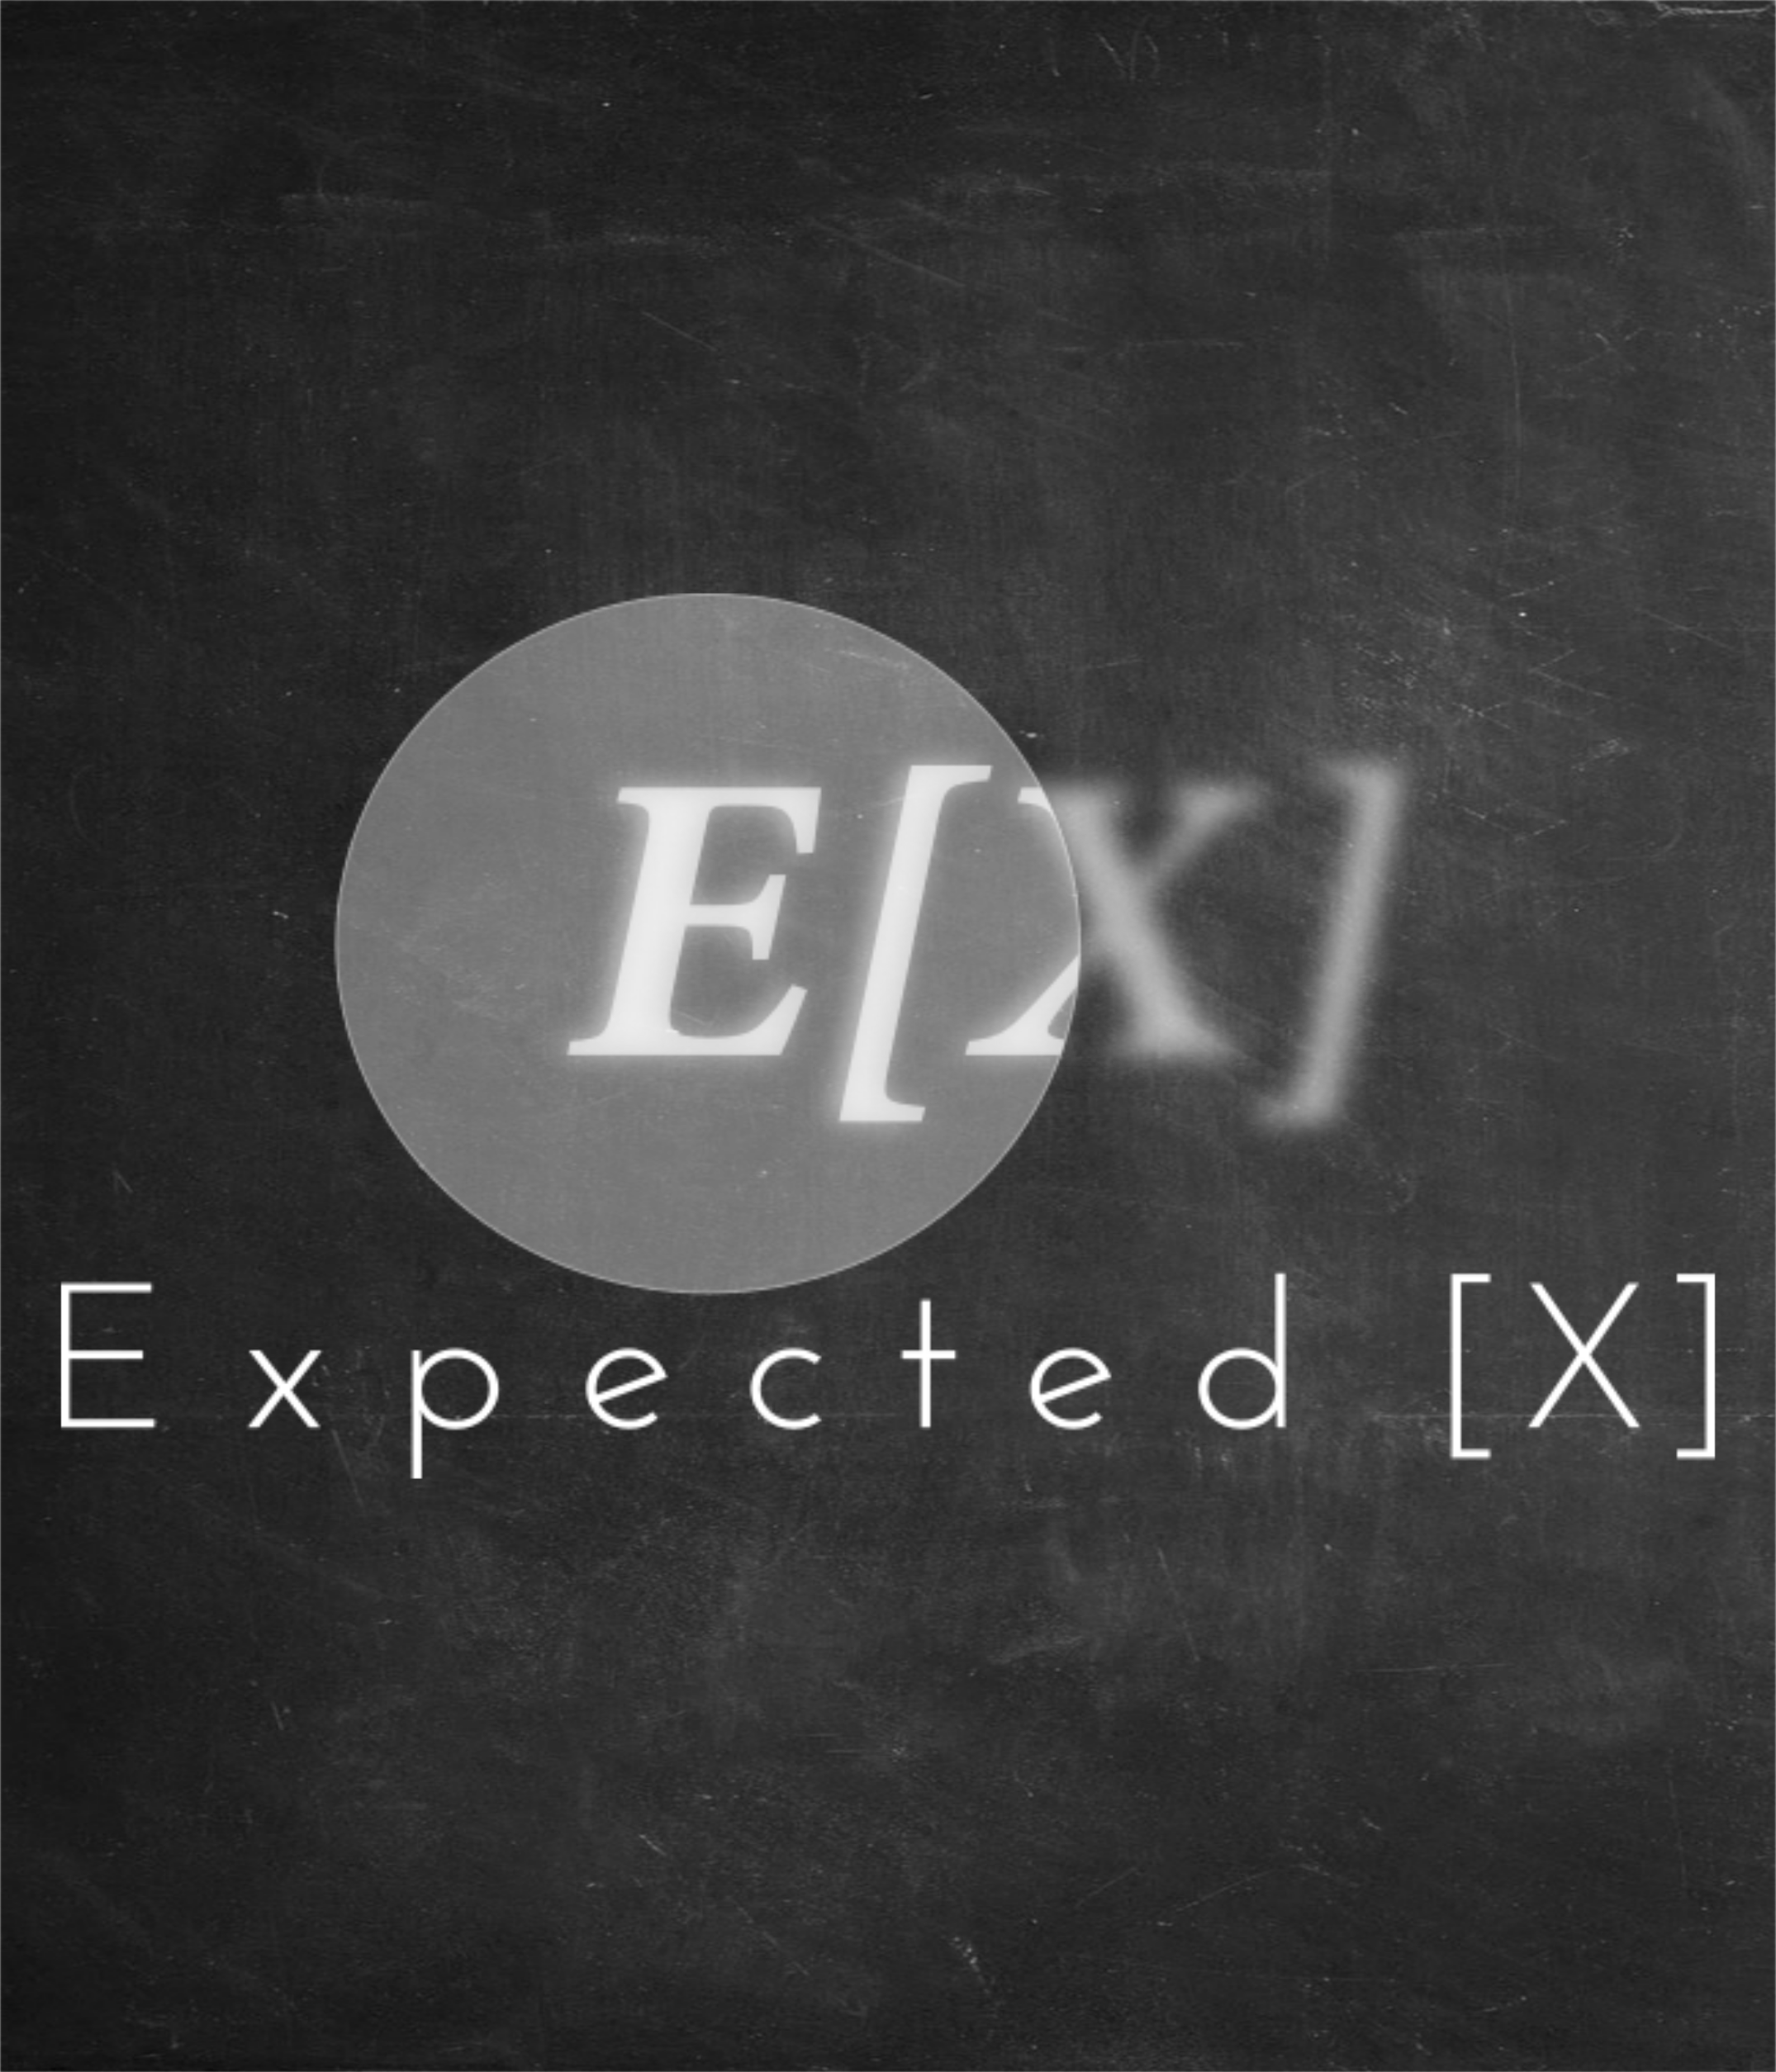 - Partner with Expected X and let their experience and specialized skills to take your business to the next level.